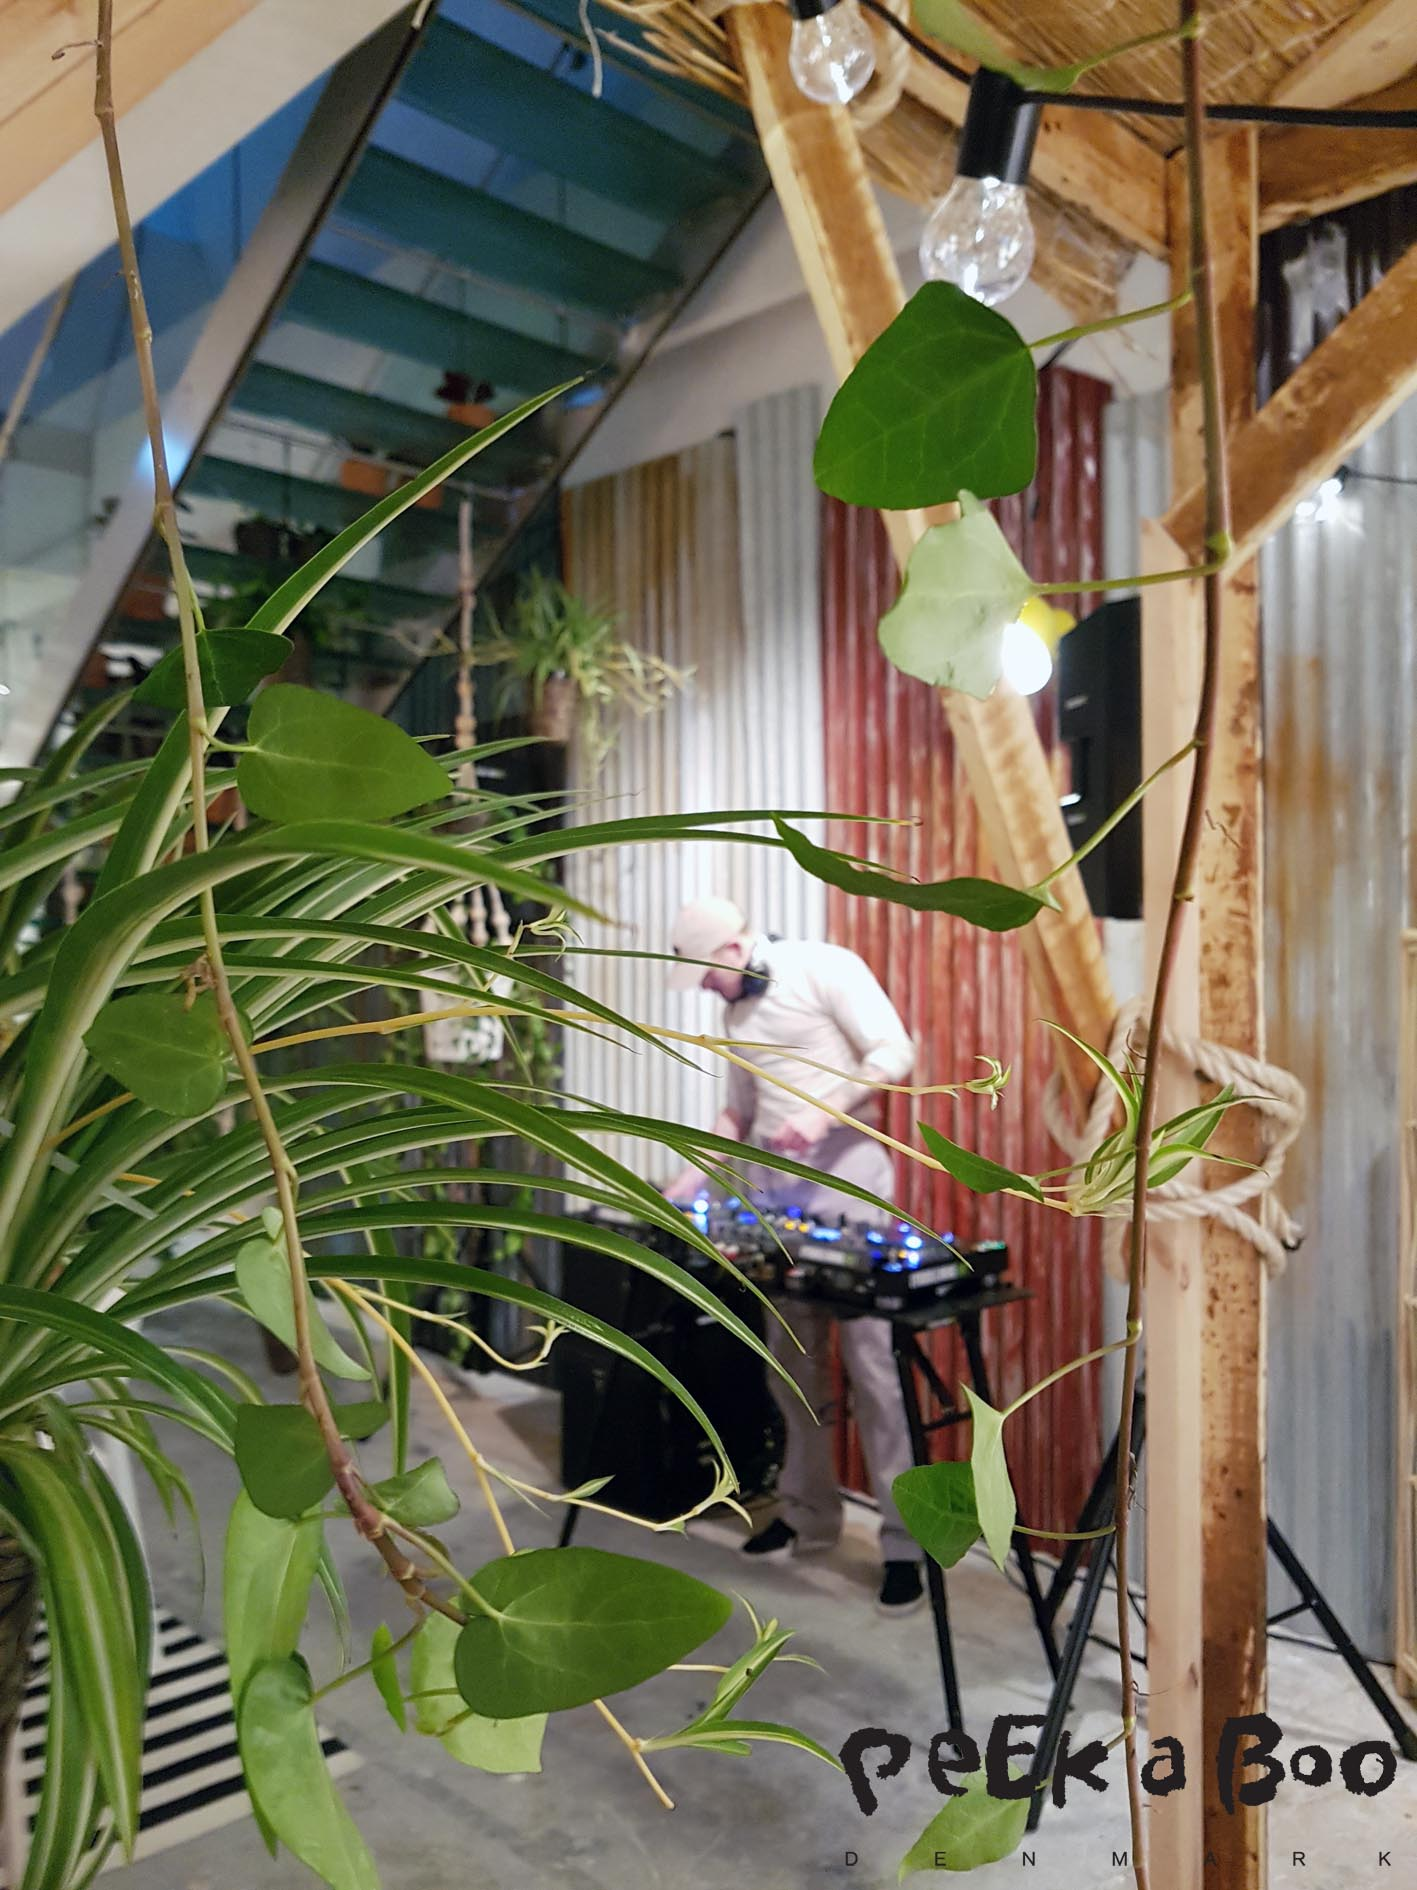 Behind the green plants you will notice the DJ.